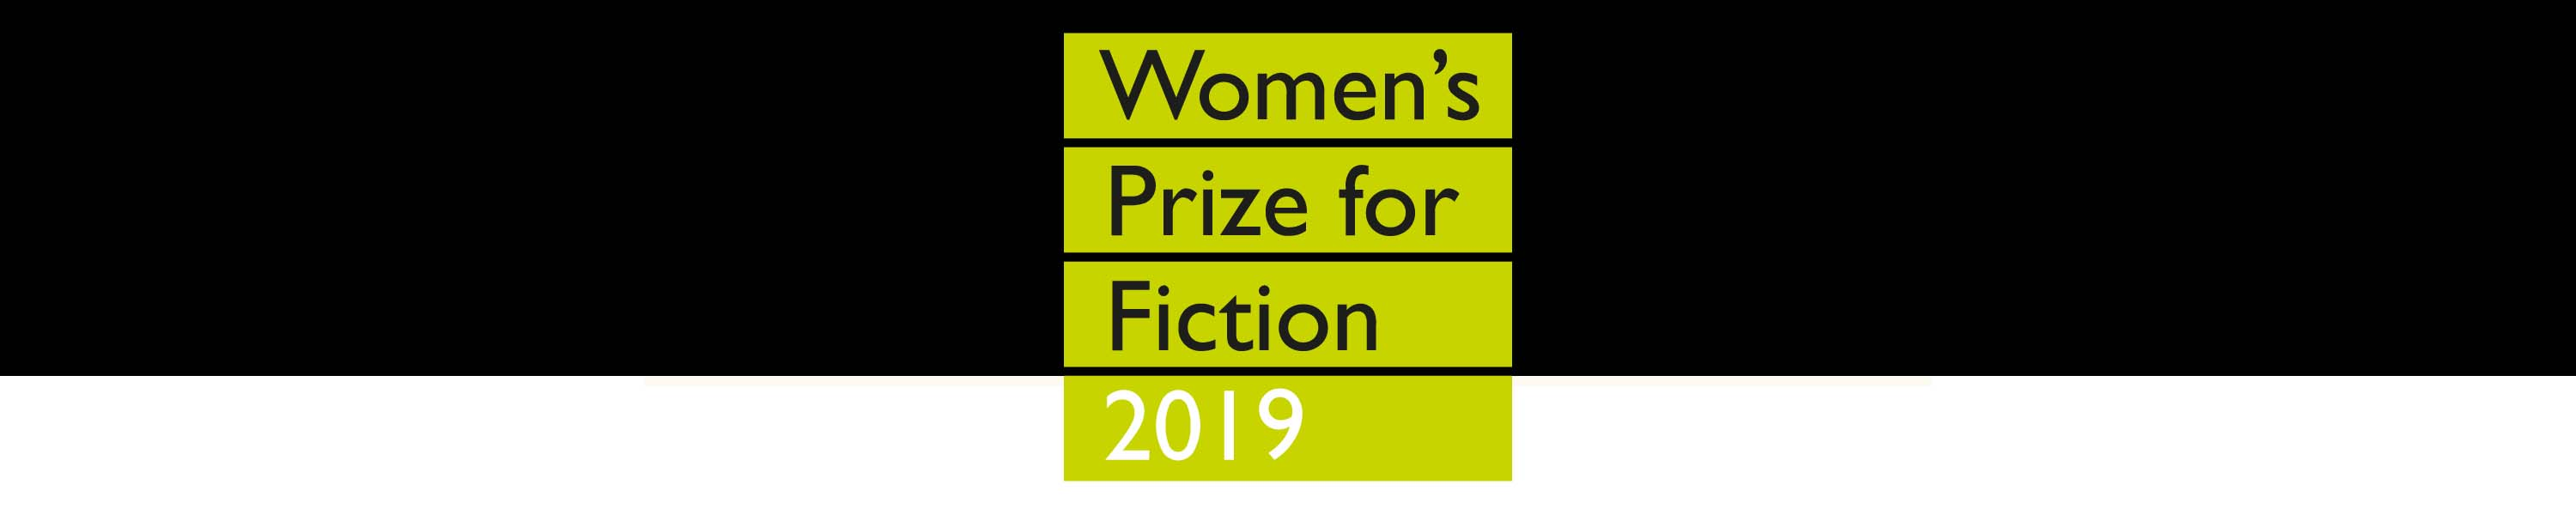 hhp-home-page-banner-womens-prize-fiction-2019.jpg